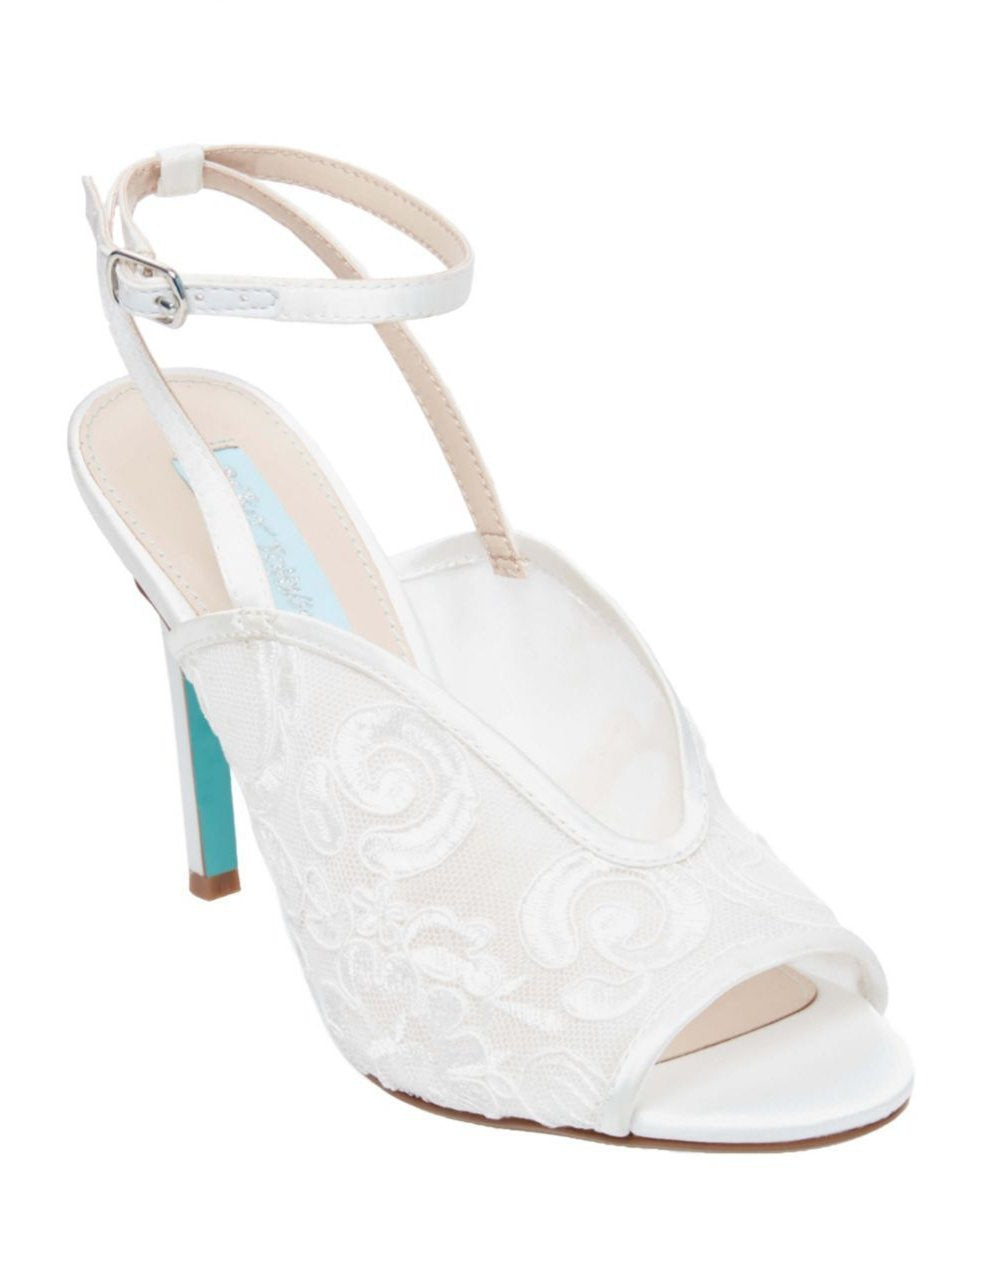 SB-LULA IVORY - SHOES - Betsey Johnson